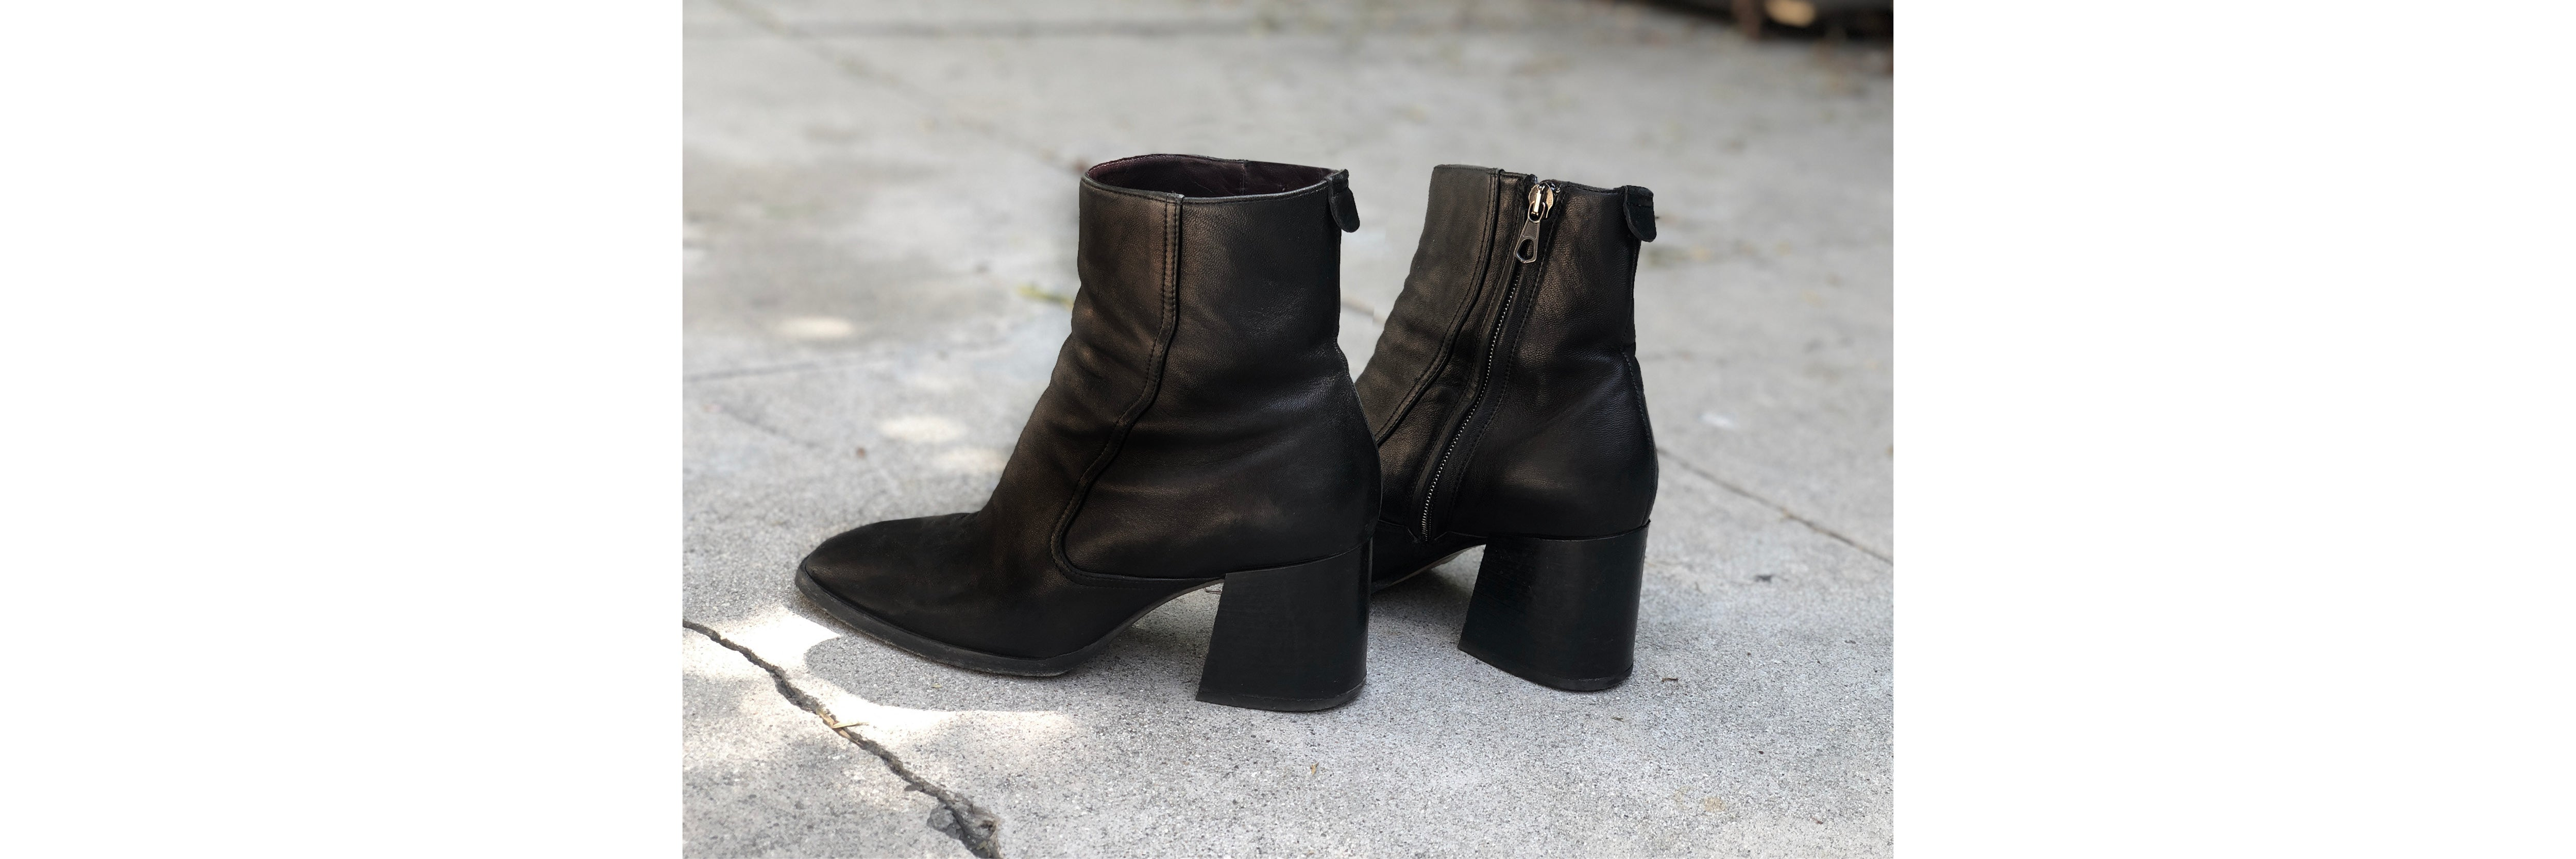 LABUCQ Jules Boot 1 year in